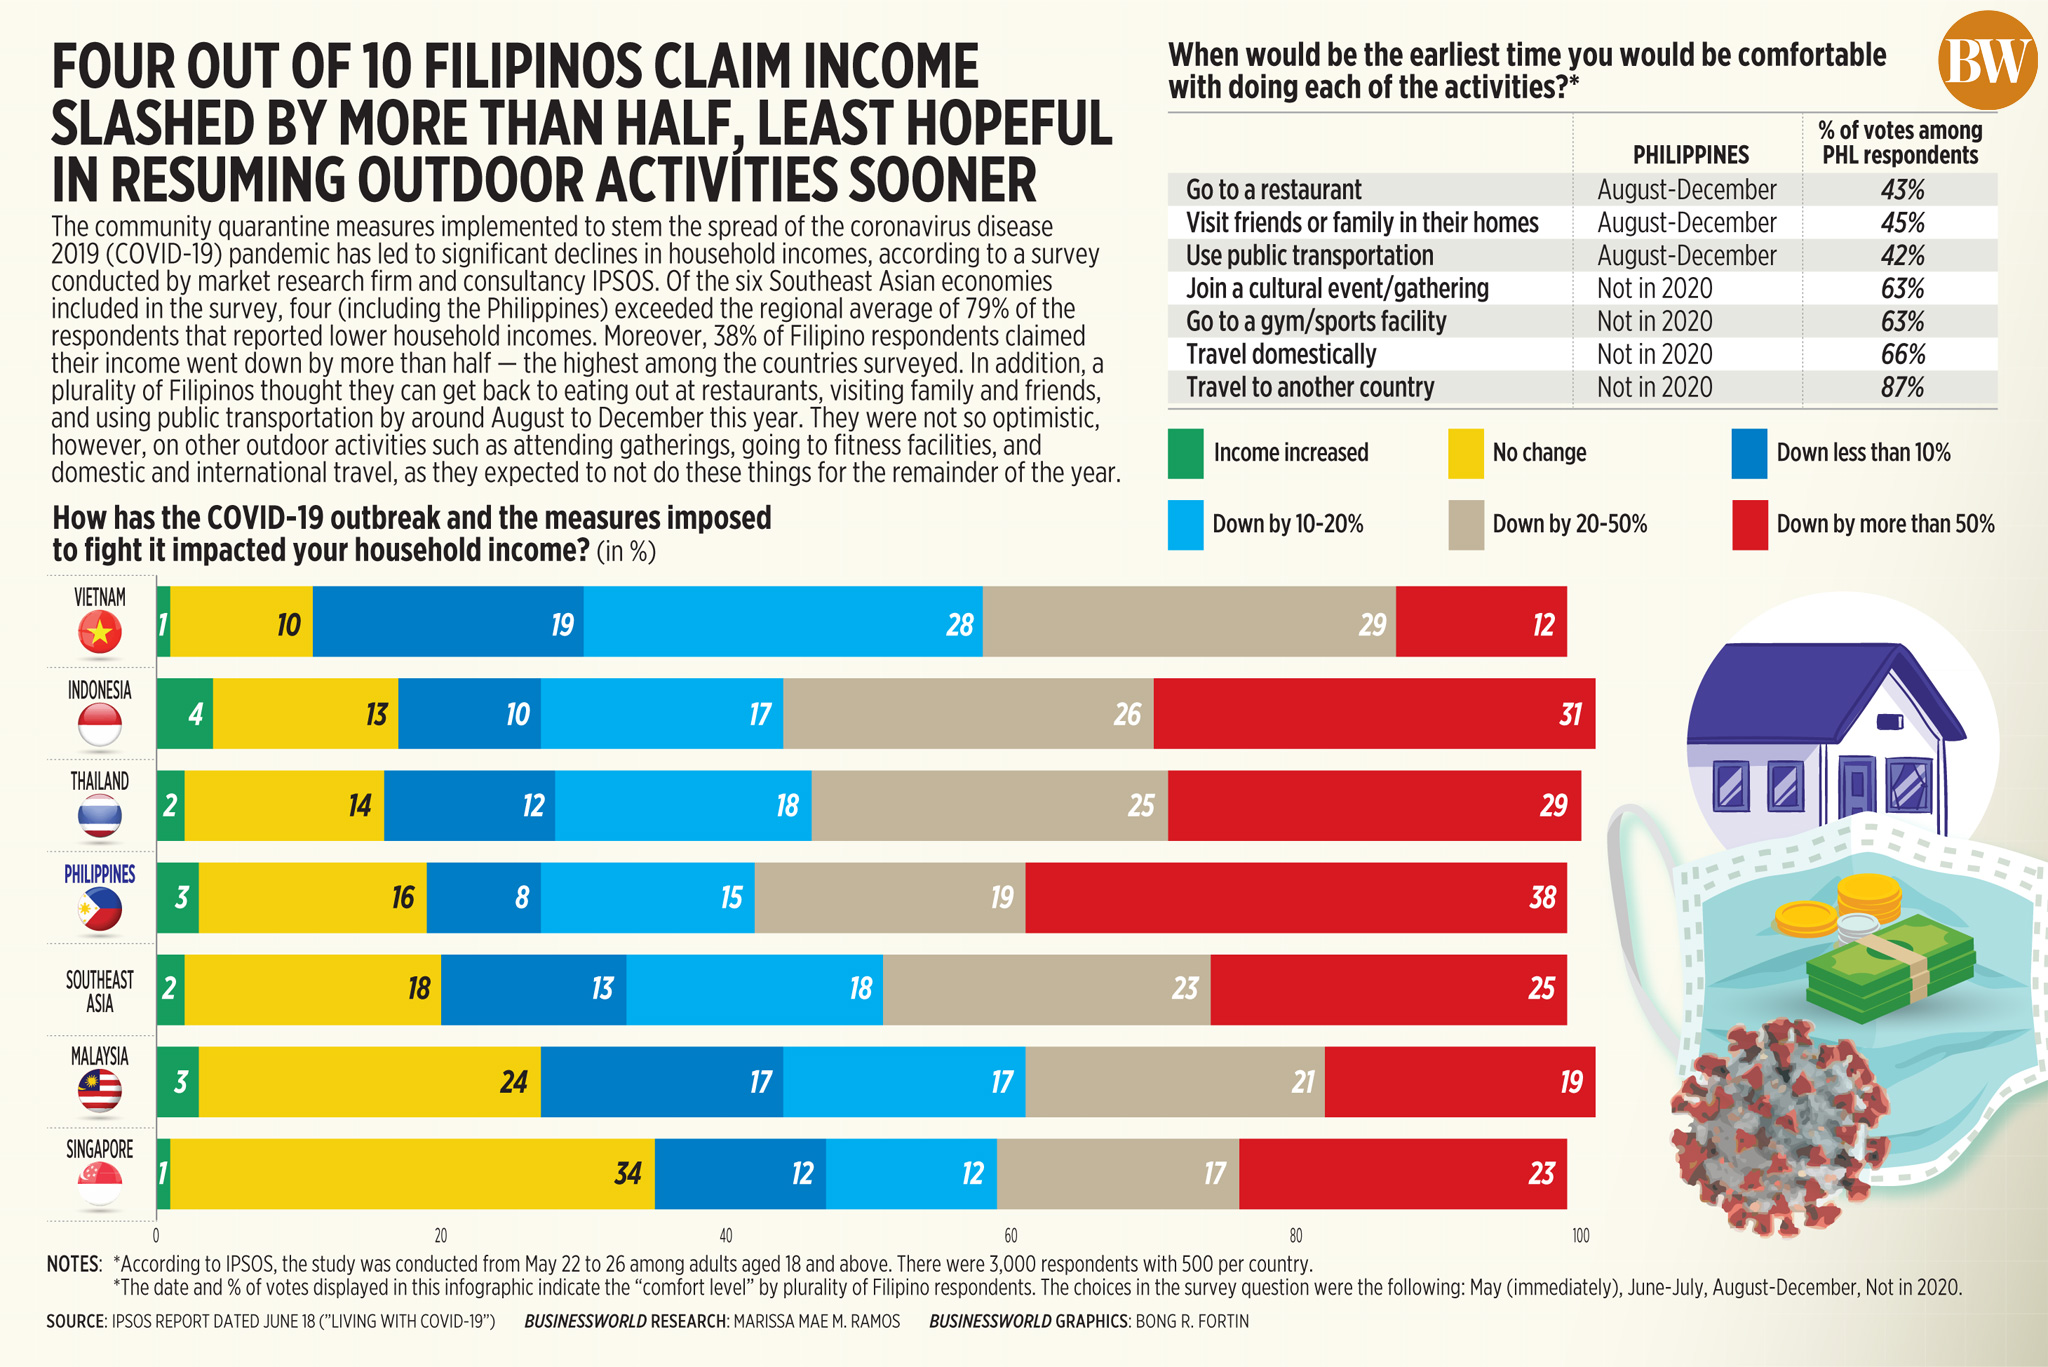 Four out of 10 filipinos claim income slashed by more than half, least hopeful in resuming outdoor activities sooner